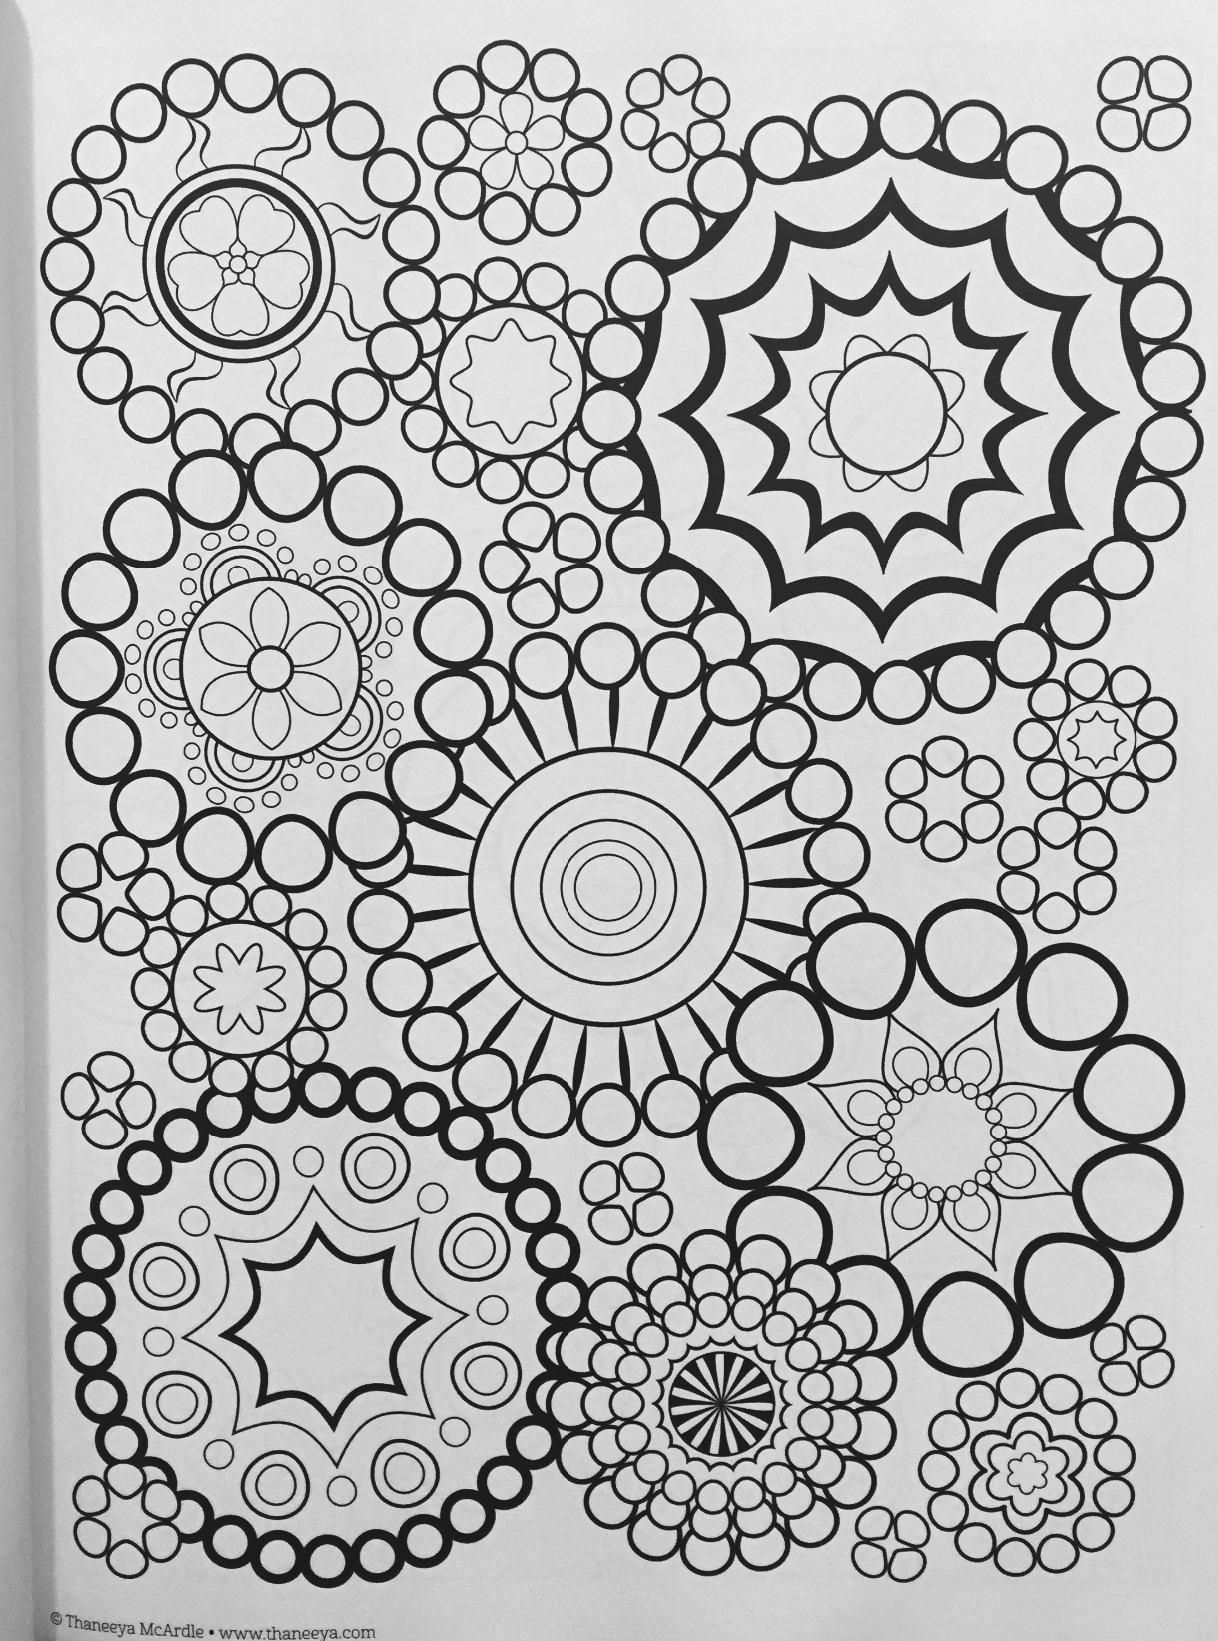 Groovy Abstract Coloring Book Design Originals Is Fun Thaneeya McArdle